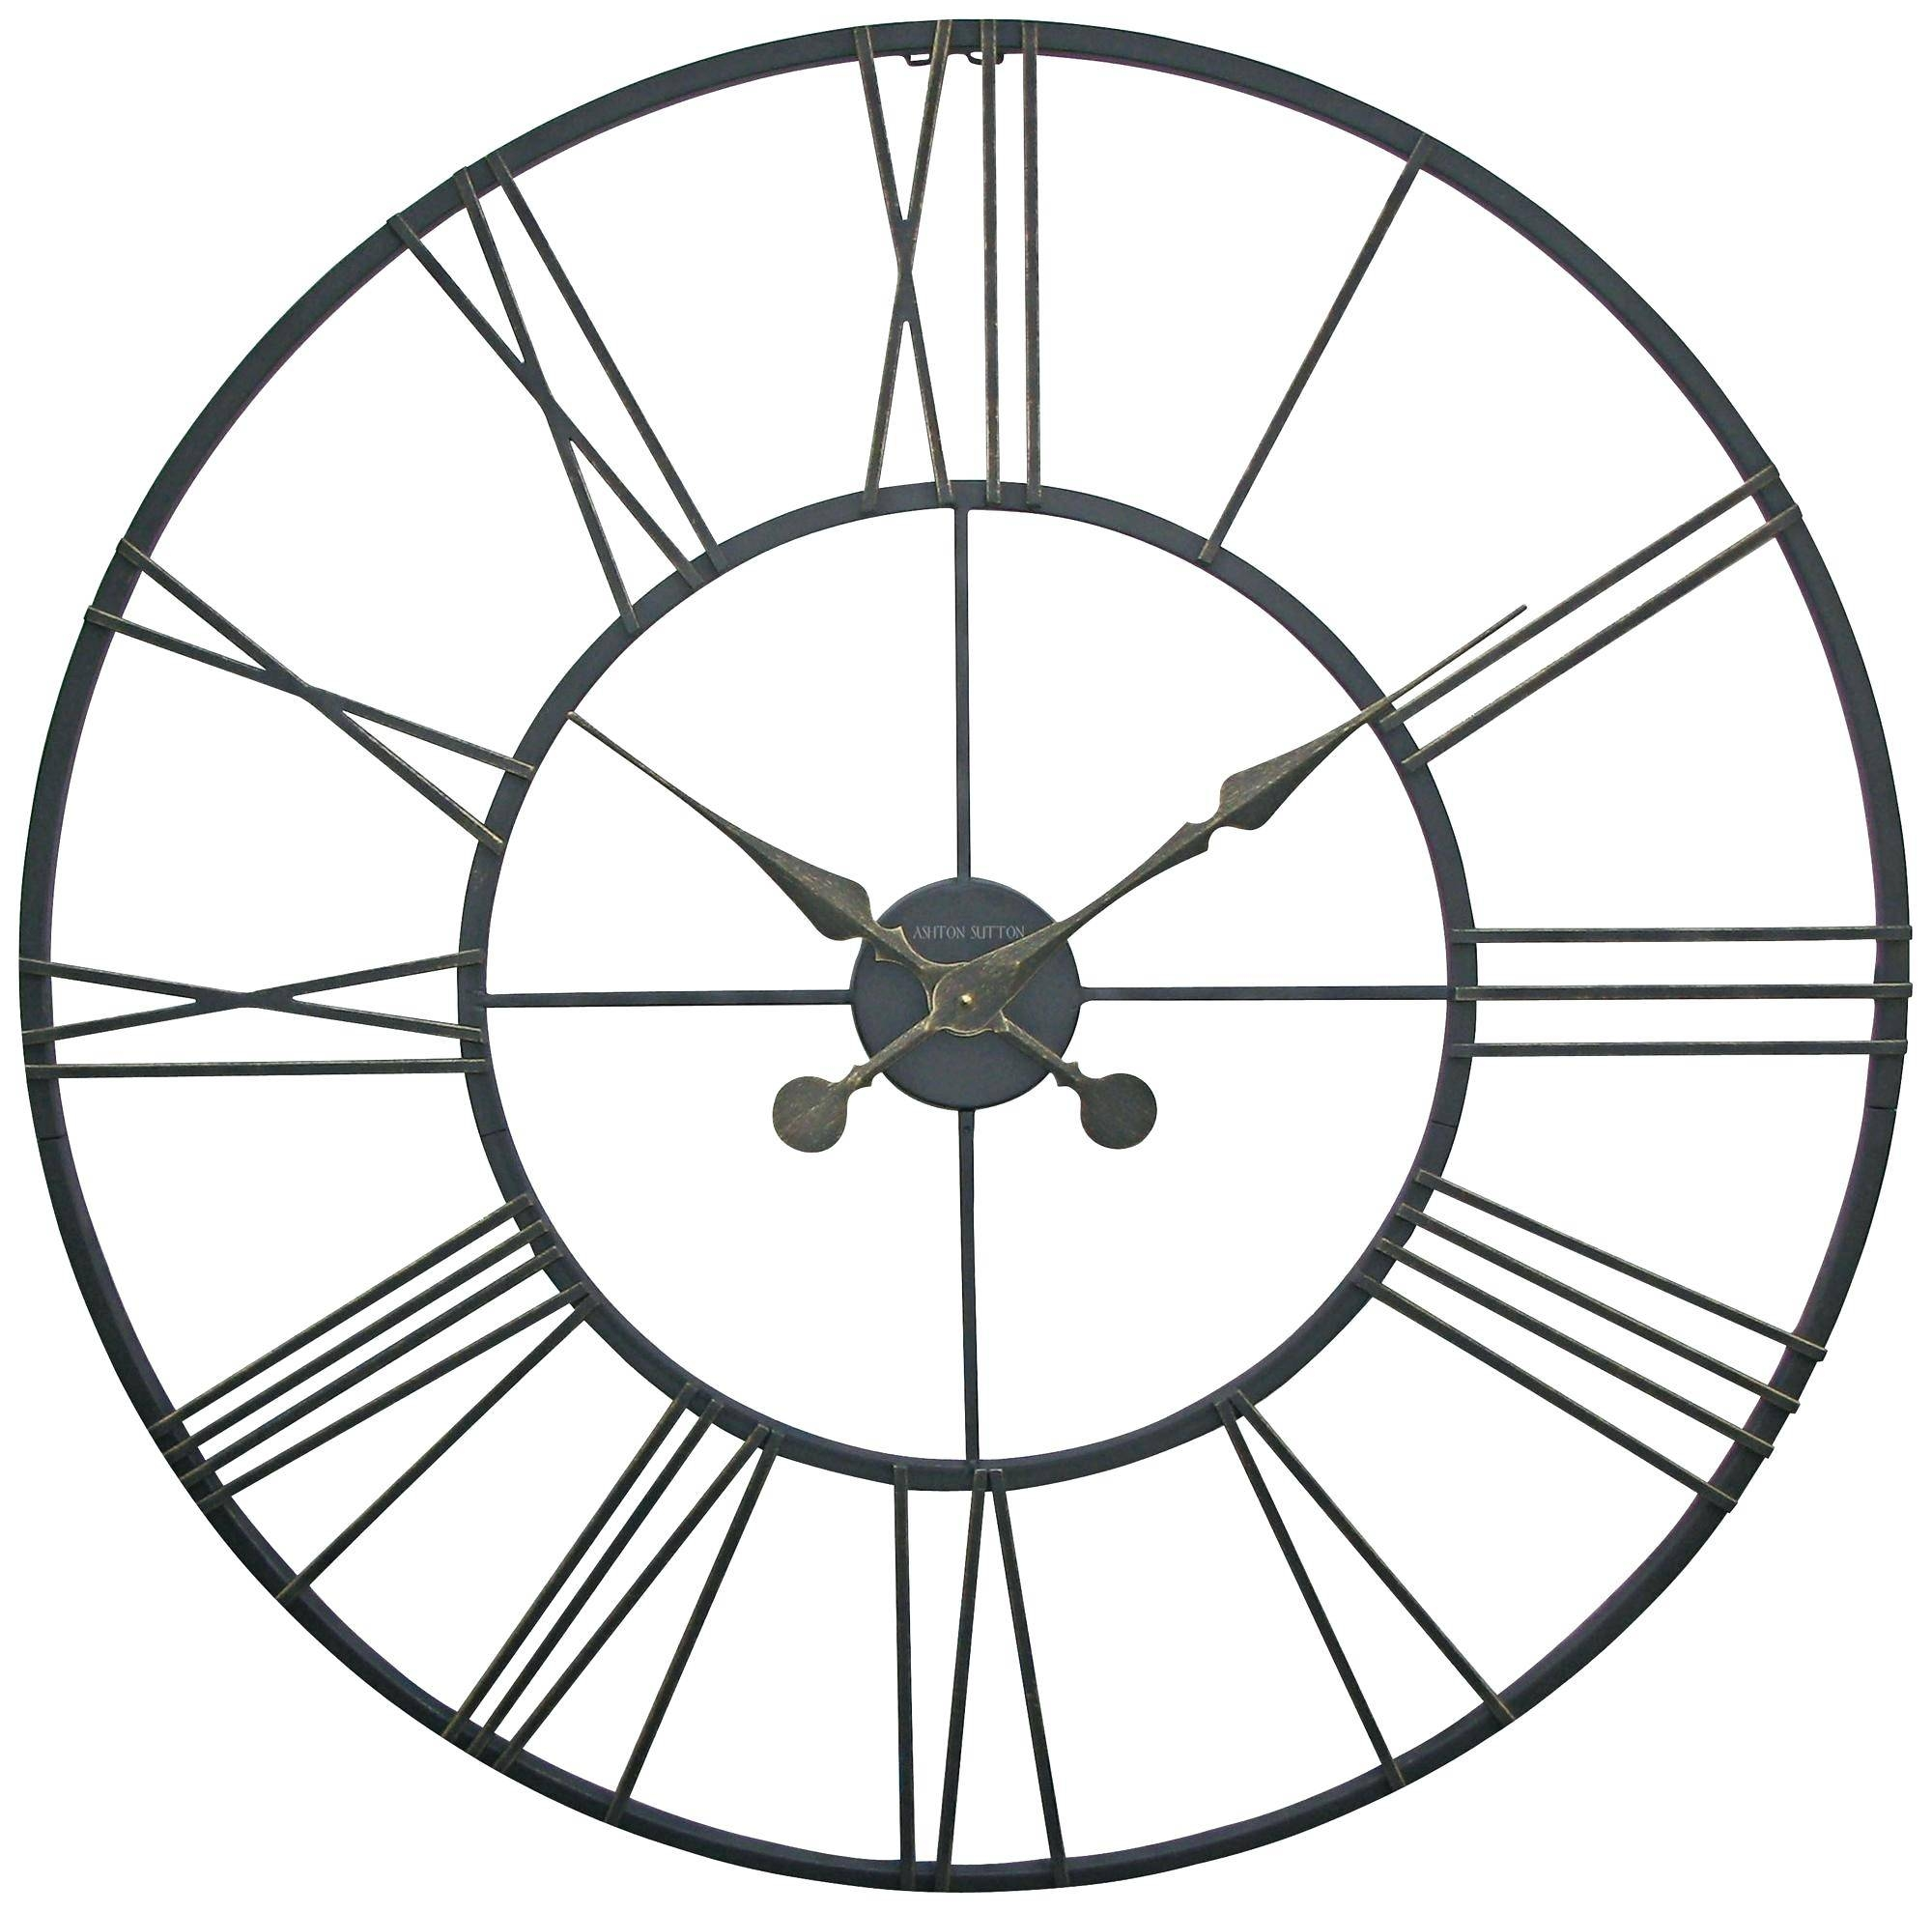 Metal Wall Clock Art Welded Round Large Studio 22 – Ouest Usa Within Best And Newest Large Metal Wall Art Clocks (View 14 of 20)